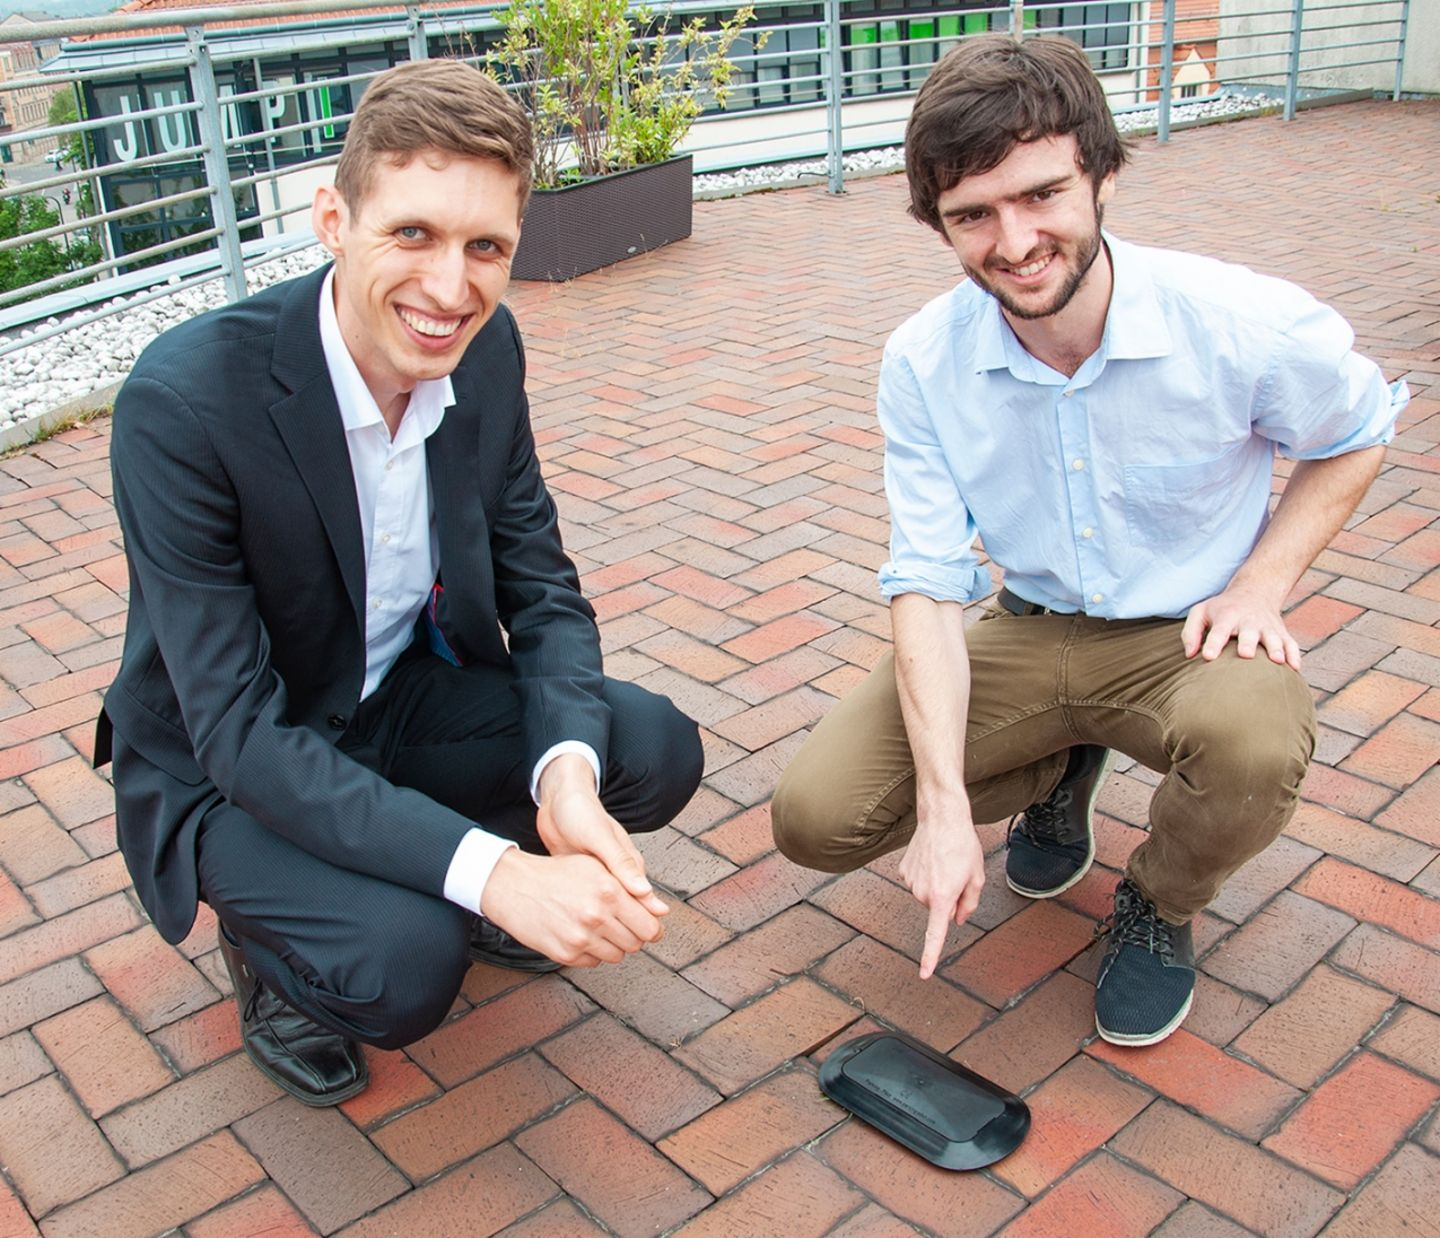 This is what a sensor looks like. Stefan Gerstenberg (VVO) and Stefan Eckart from Smart-City-System.